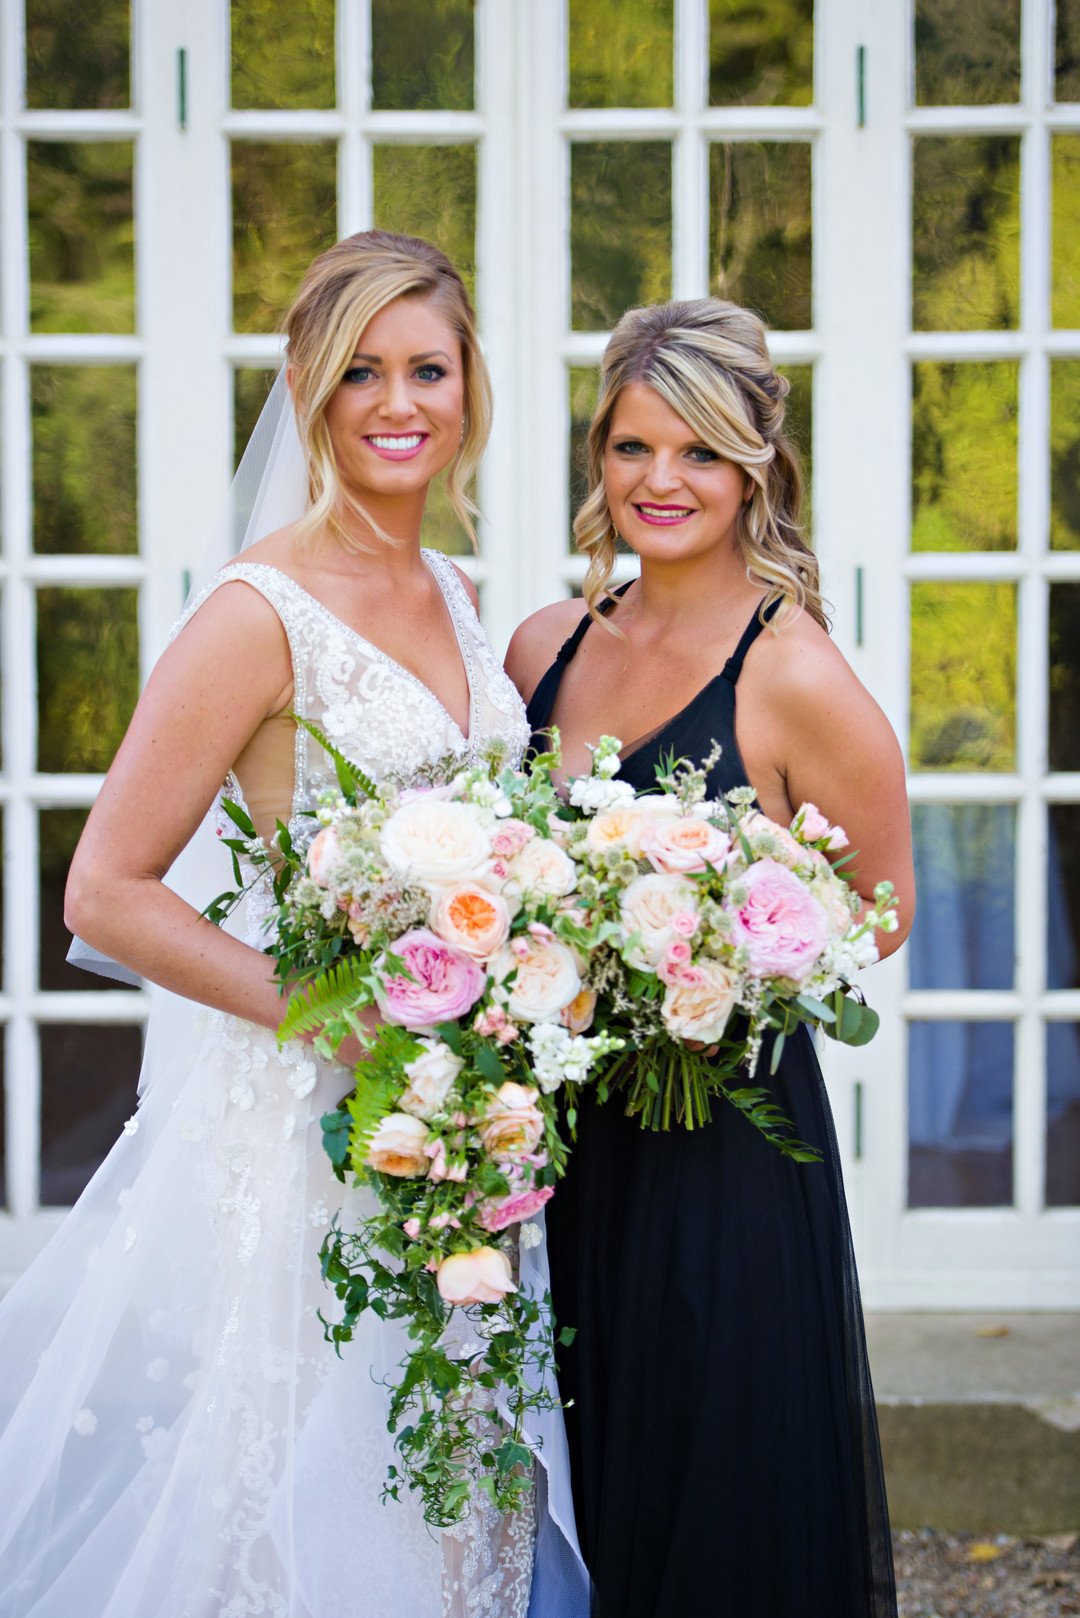 Fairytale wedding in Monticello, IL captured by Mark Romine Photography. See more wedding inspiration at CHItheeWED.com!